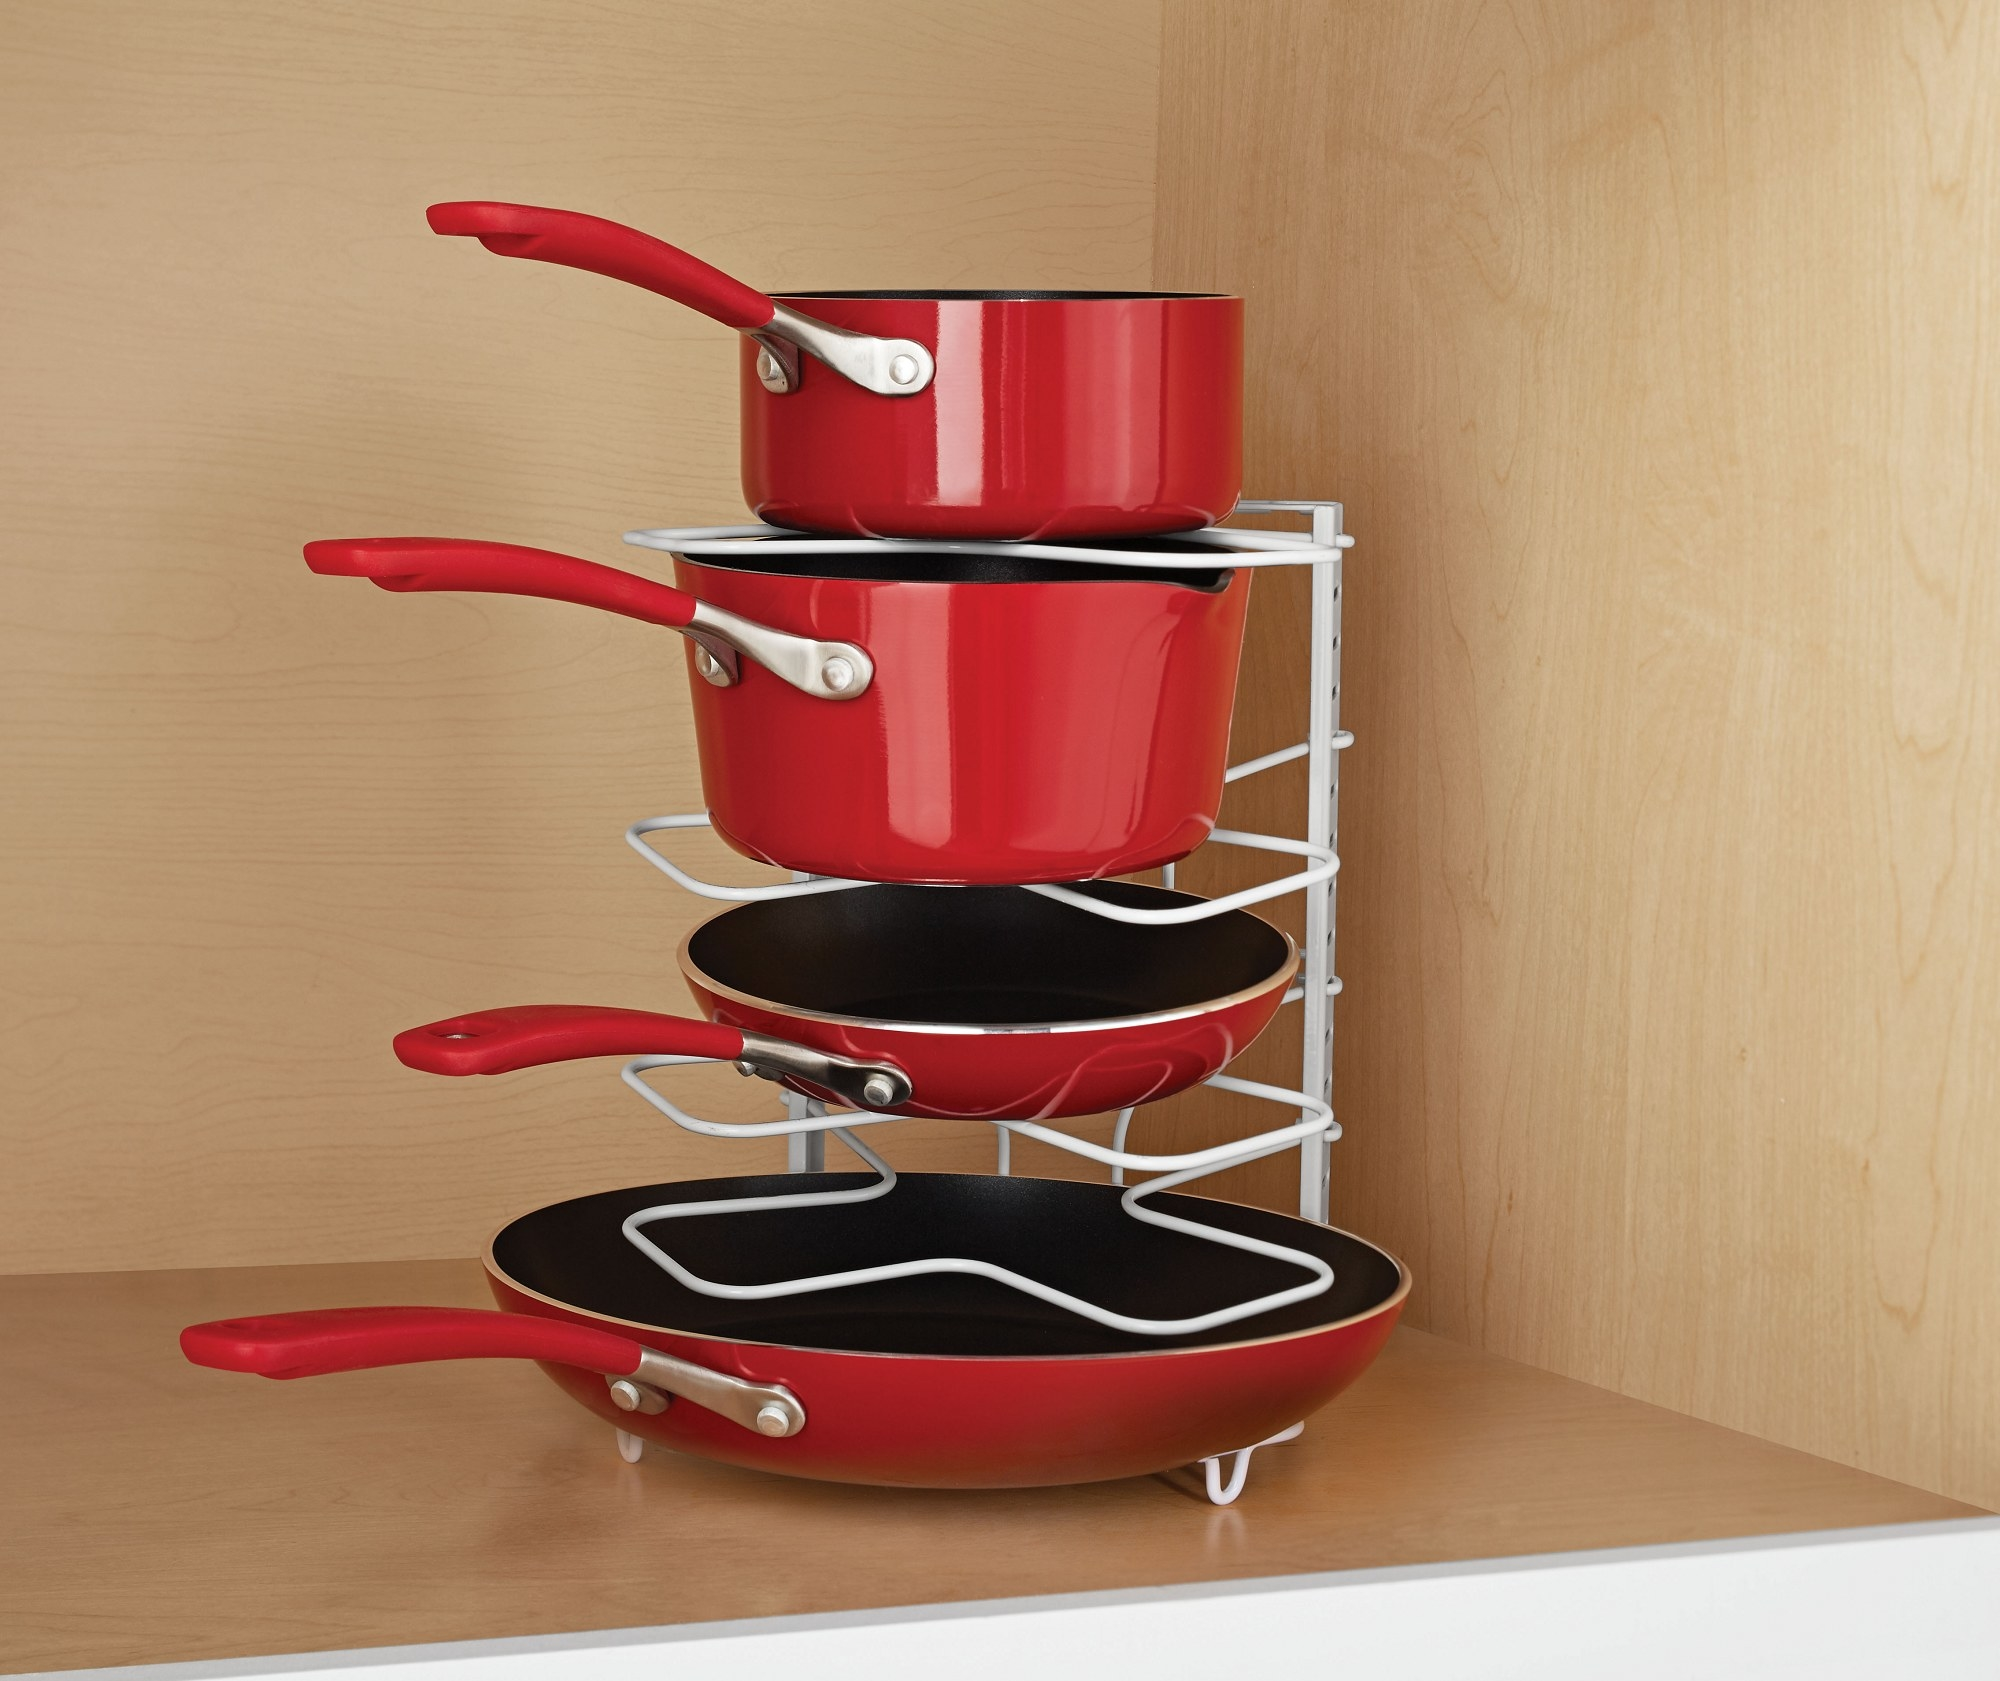 The wire rack with pans stacked between shelves